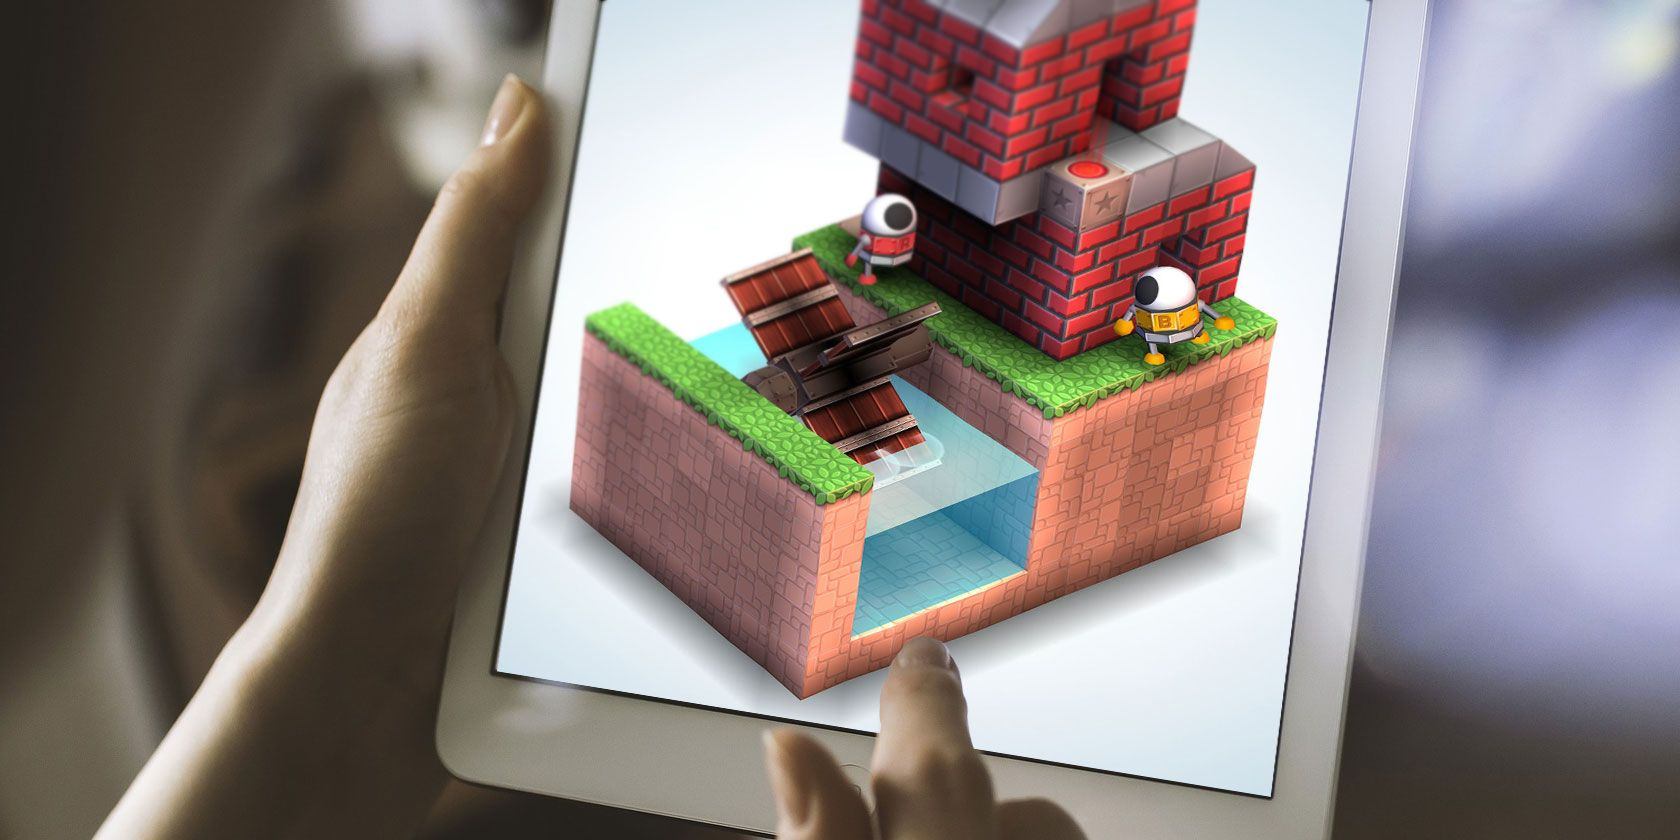 The 12 Best Offline Games for iPhone and iPad to Play Without Data or Wi-Fi